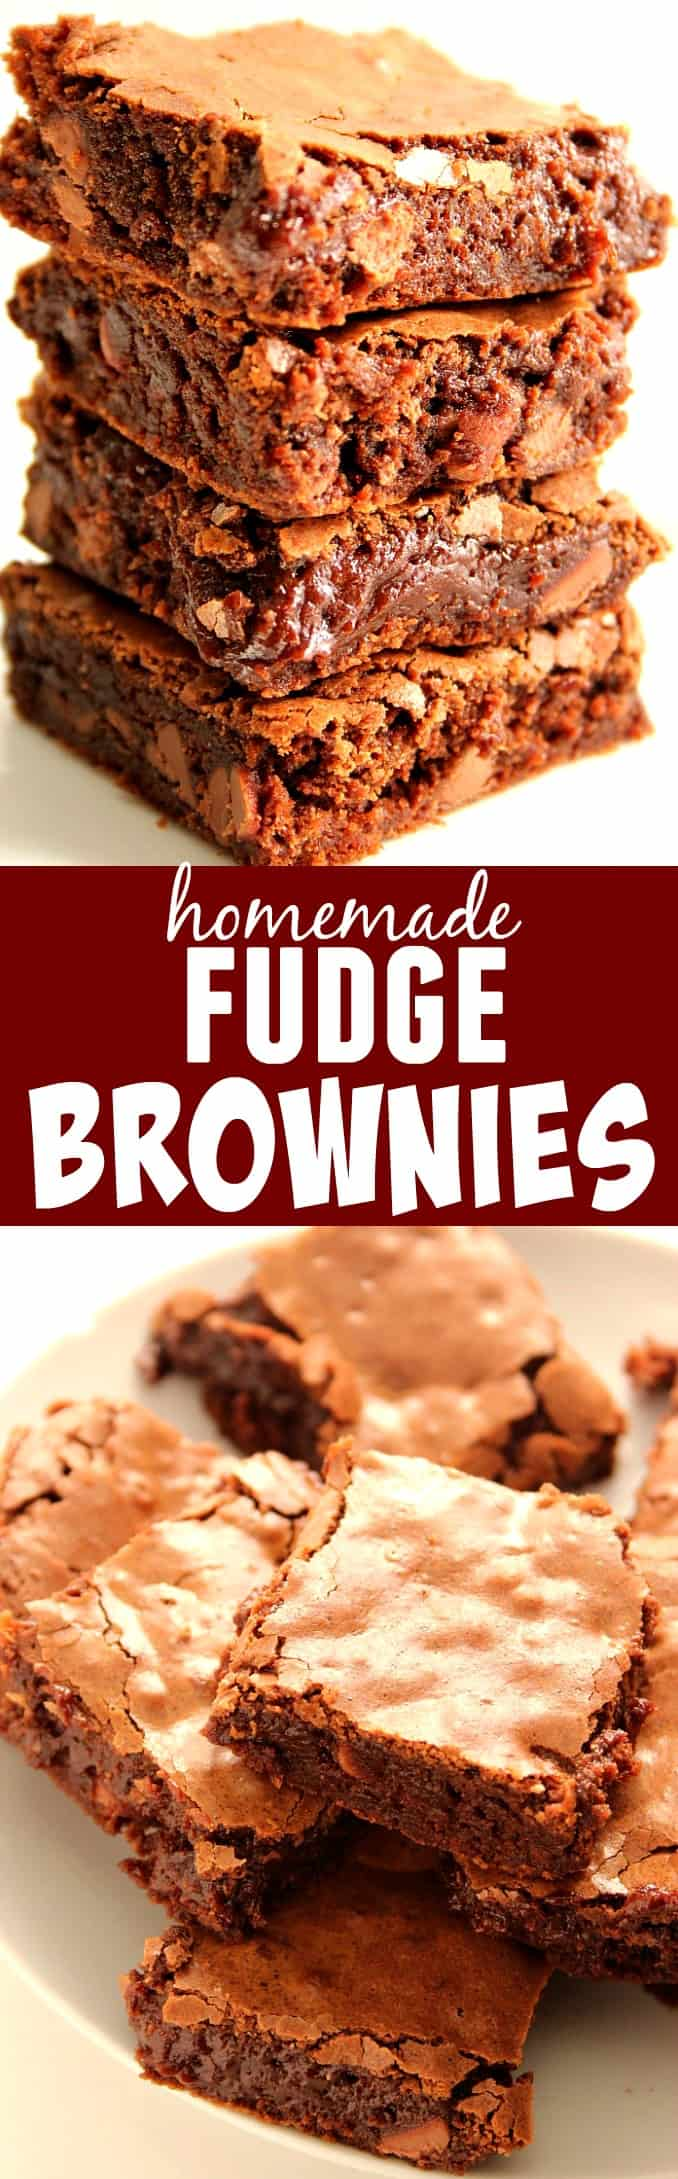 homemade fudge brownies long C Homemade Fudge Brownies Recipe